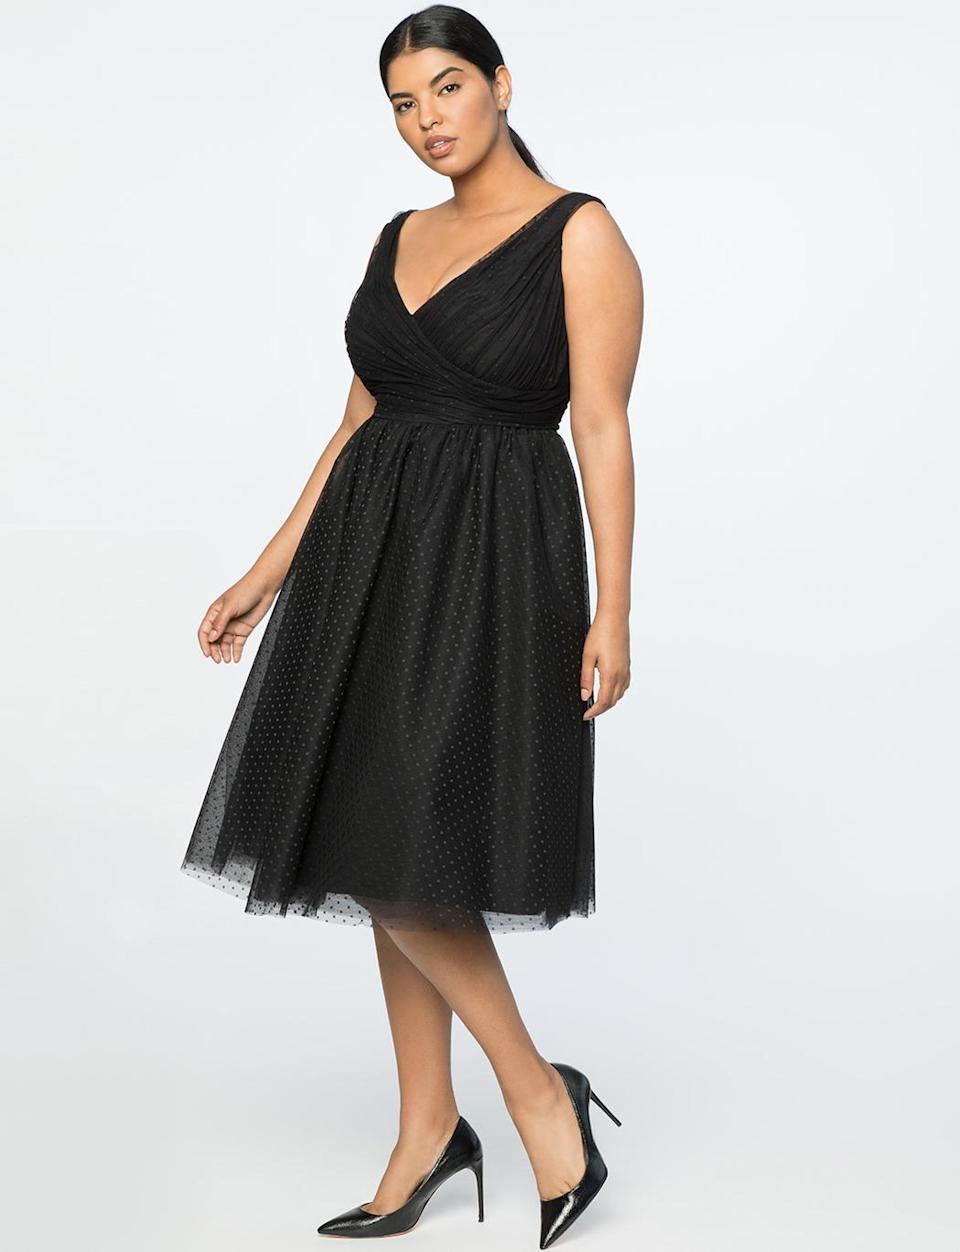 """<p>For someone looking for an LBD with a little more jazz and movement, this polka-dot tulle dress fits the bill. <br>Point d'Espirit dress, $230, <a rel=""""nofollow noopener"""" href=""""https://fave.co/2zgID5I"""" target=""""_blank"""" data-ylk=""""slk:eloquii.com"""" class=""""link rapid-noclick-resp"""">eloquii.com</a> </p>"""